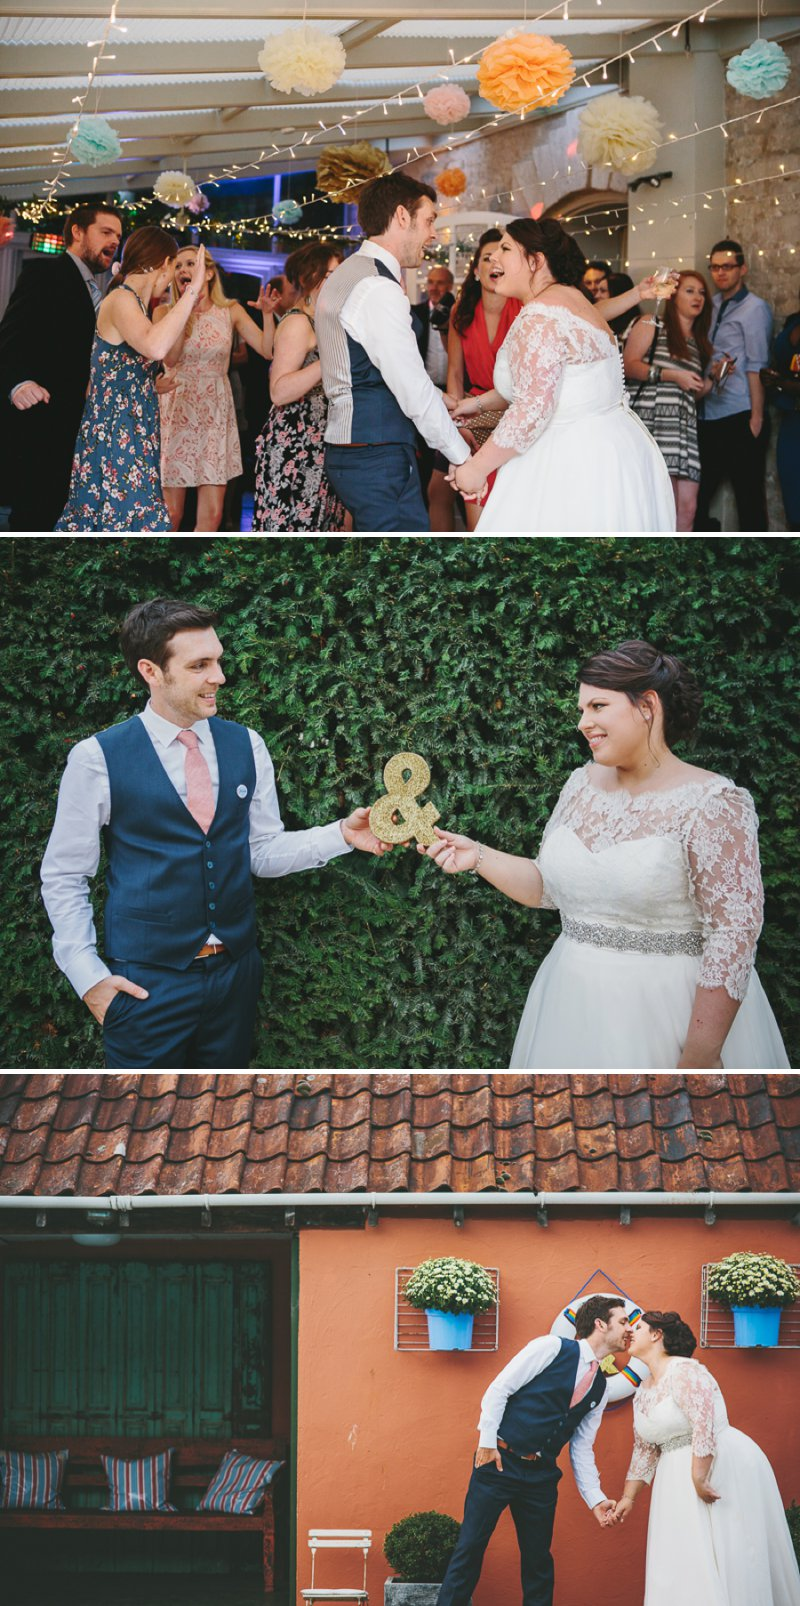 Blush Pink And Gold Glitter Themed Wedding At The Rectory Hotel With Bride In Bespoke Gown By Dana Bolton And Groom In Ted Baker Pashion Suit With Elegant Typography Across The Paper Goods And Images By Shell de Mar Photography 12